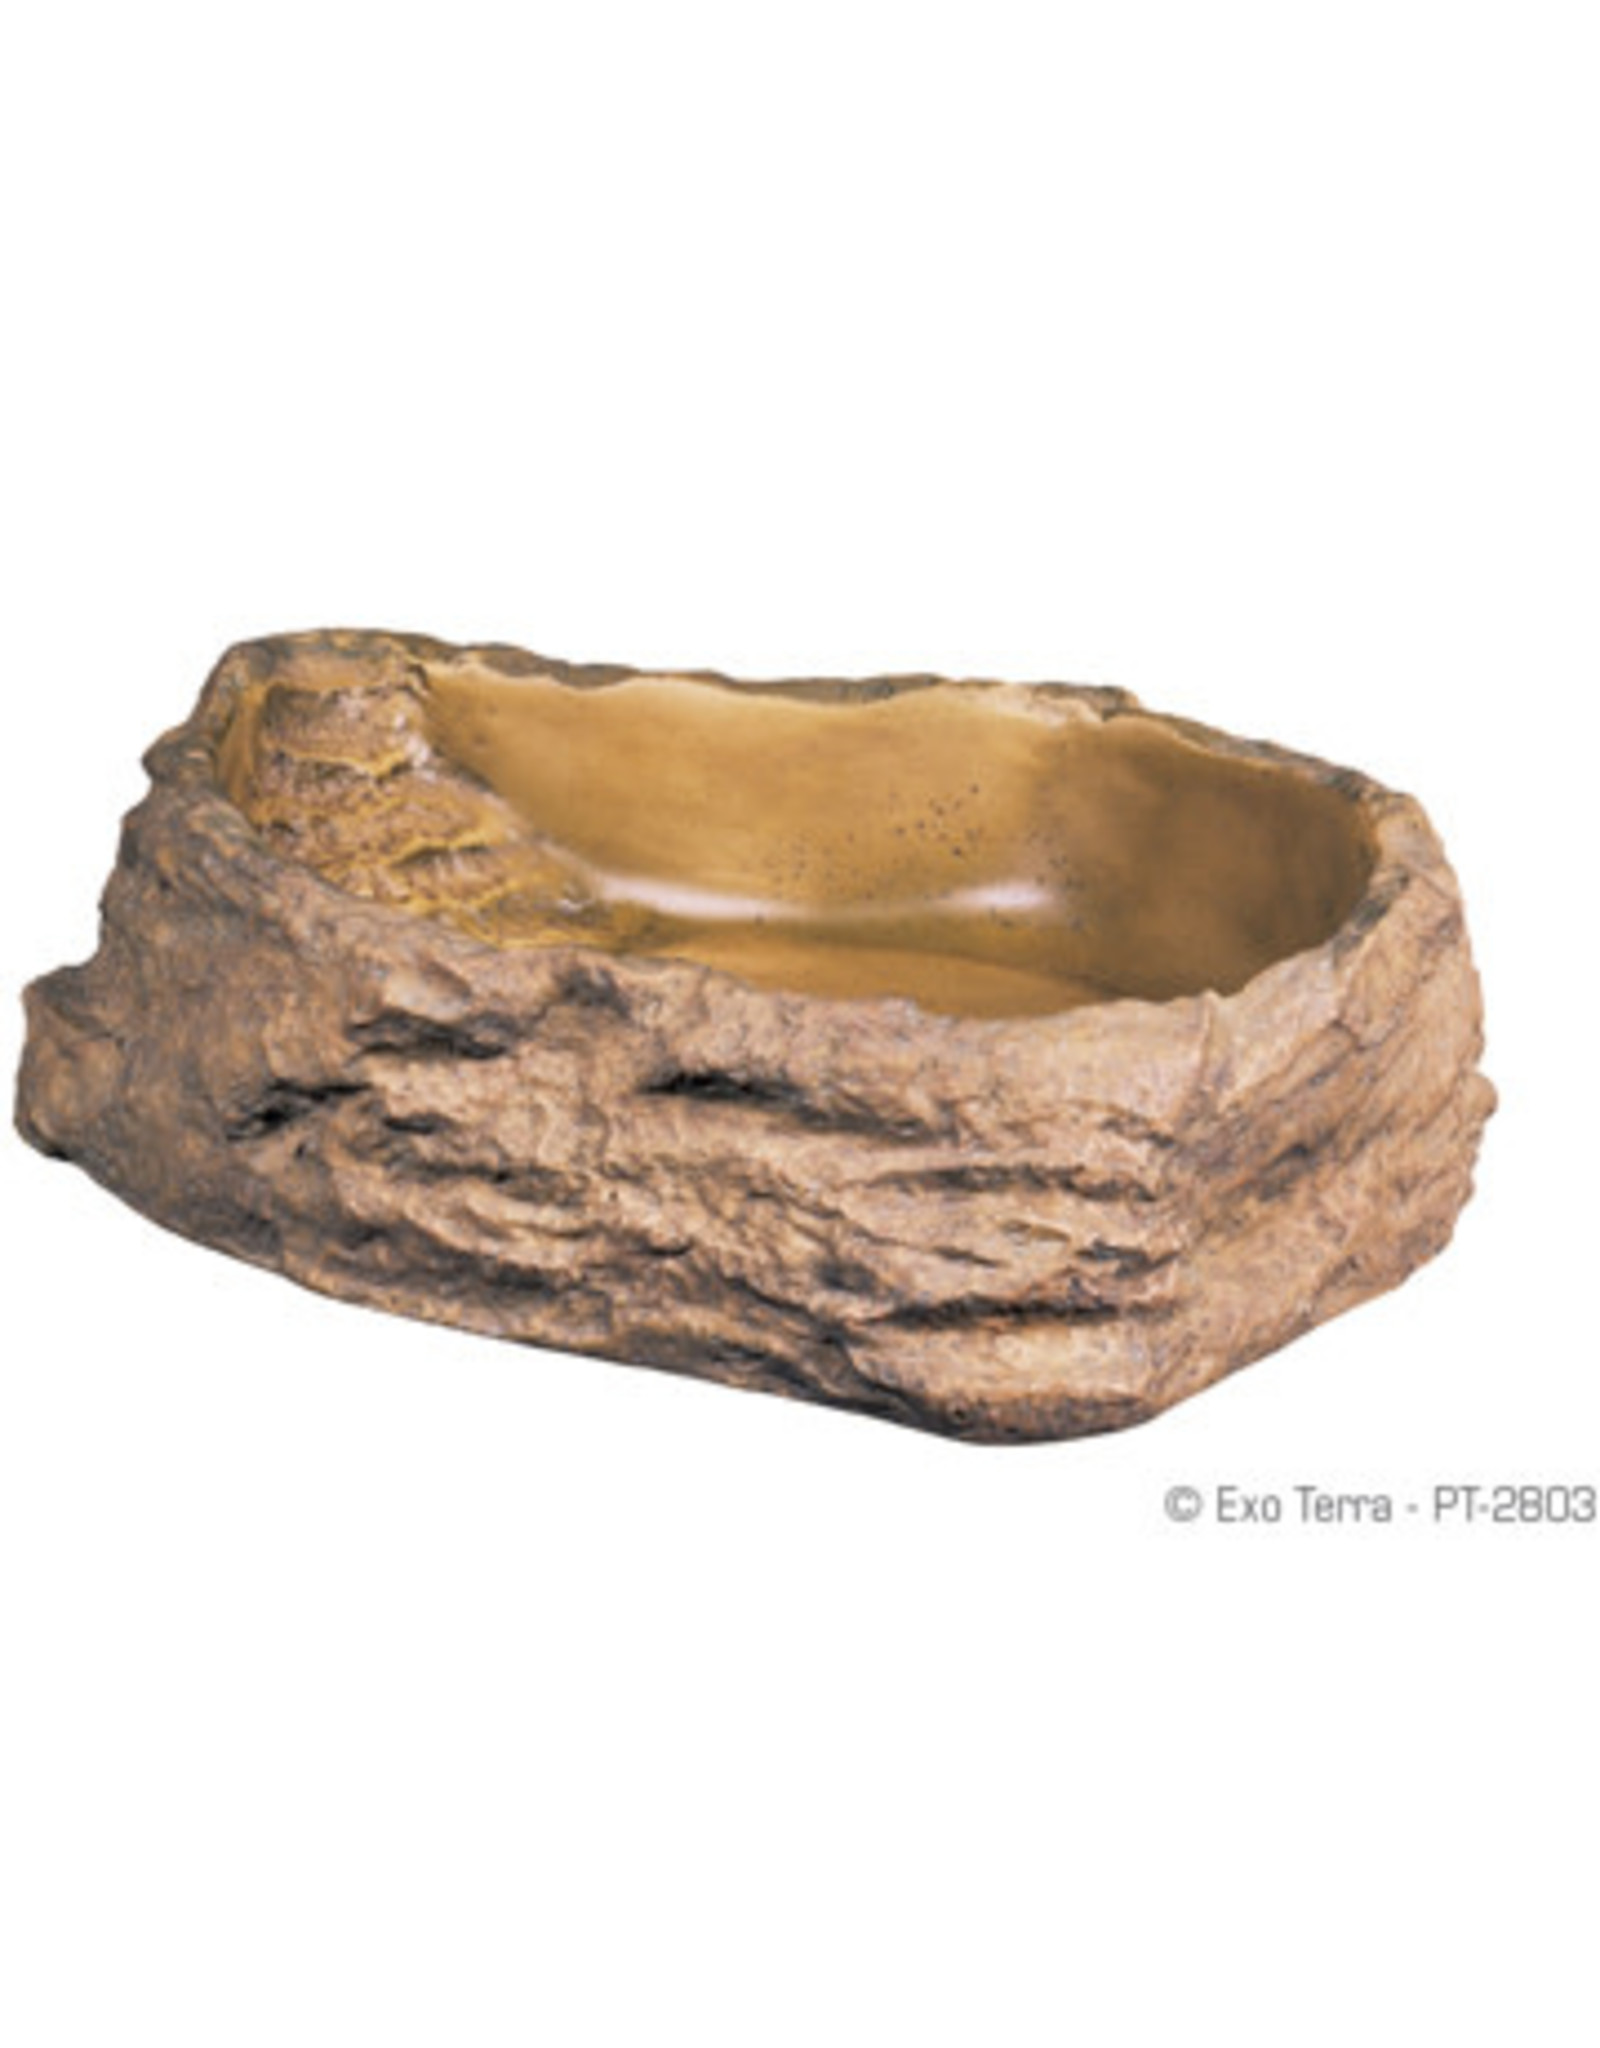 Exo Terra Water Dish - Large